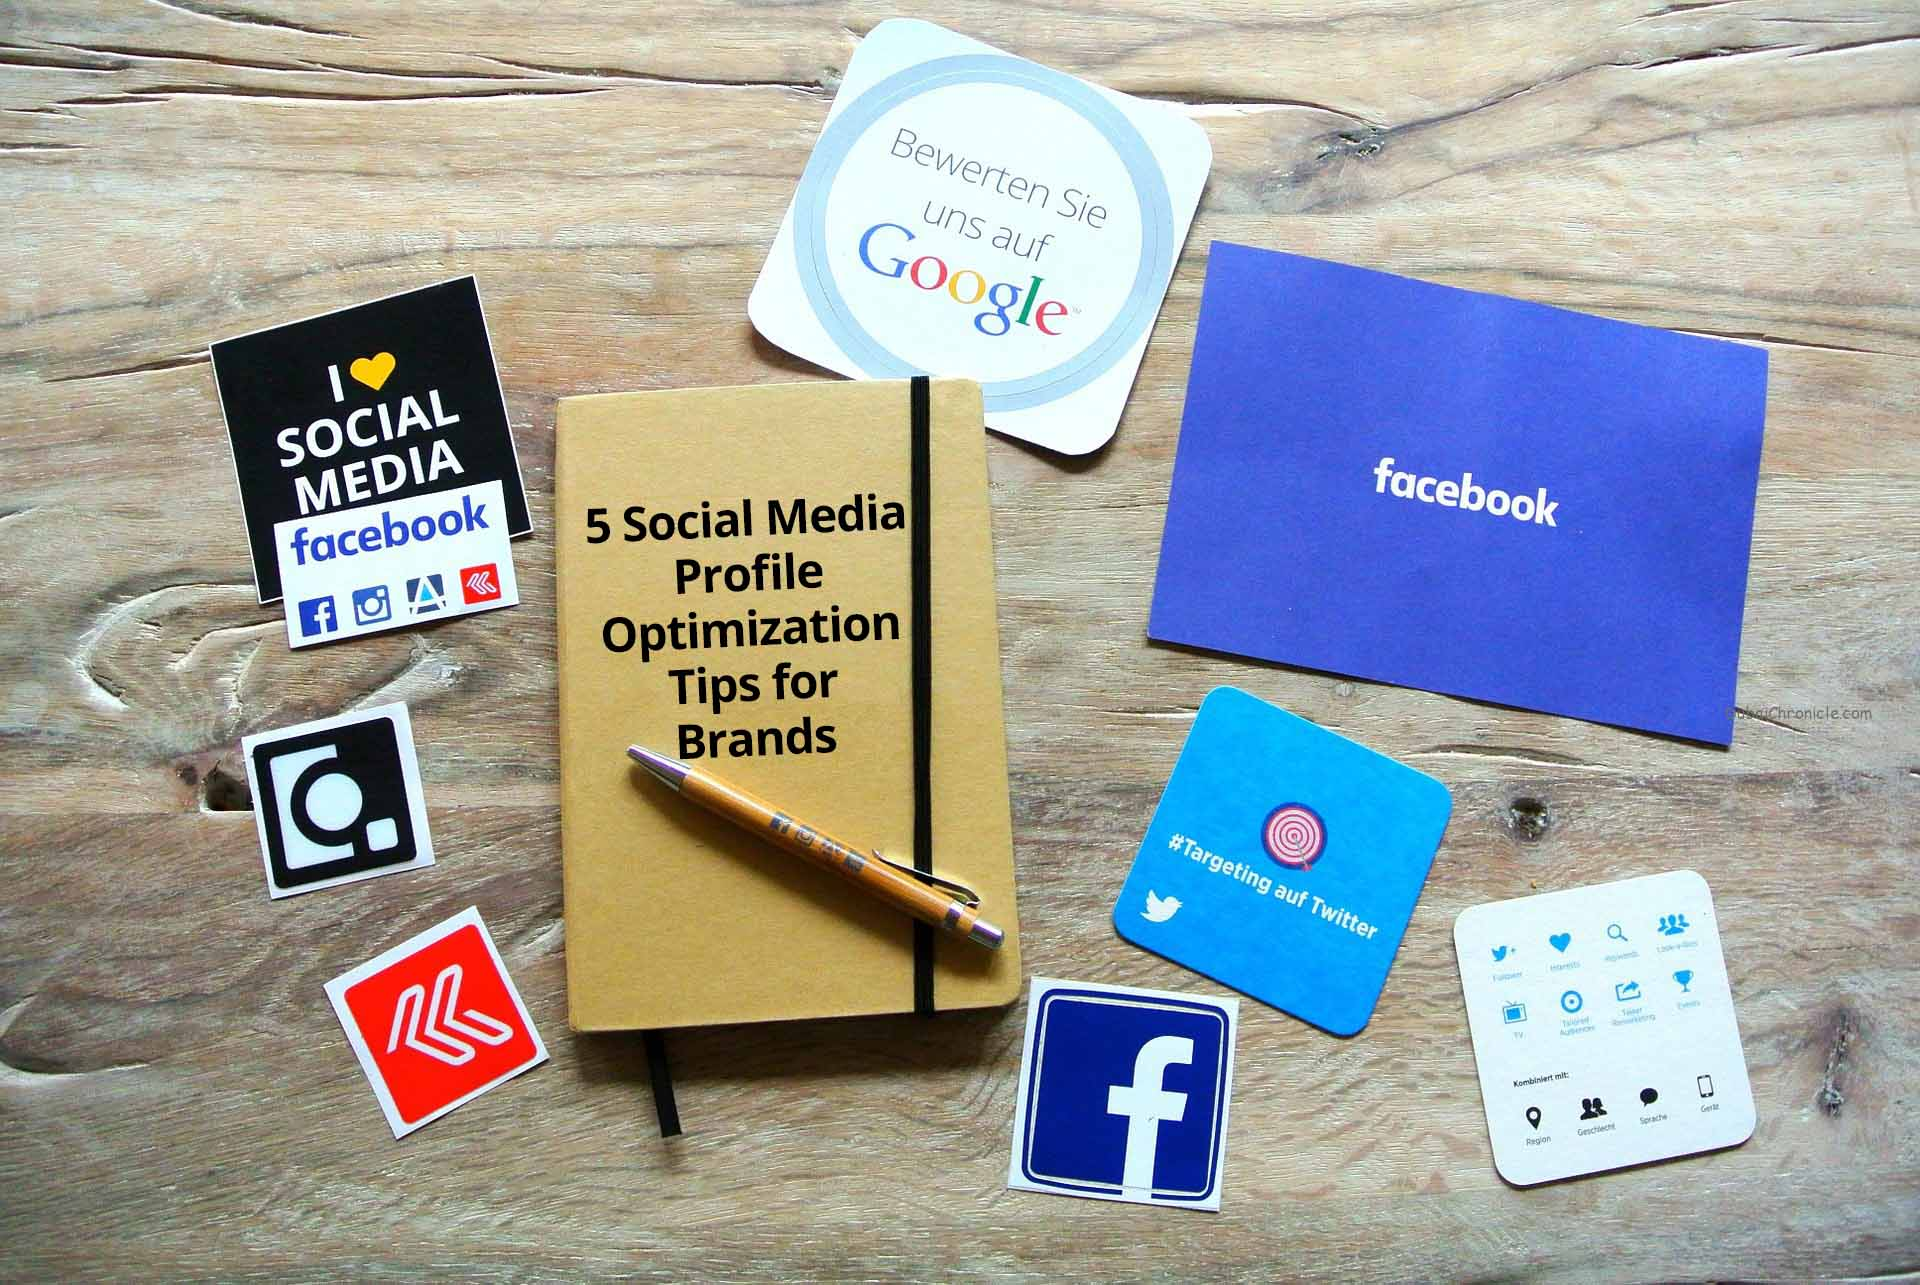 5 Social Media Profile Optimization Tips for Brands